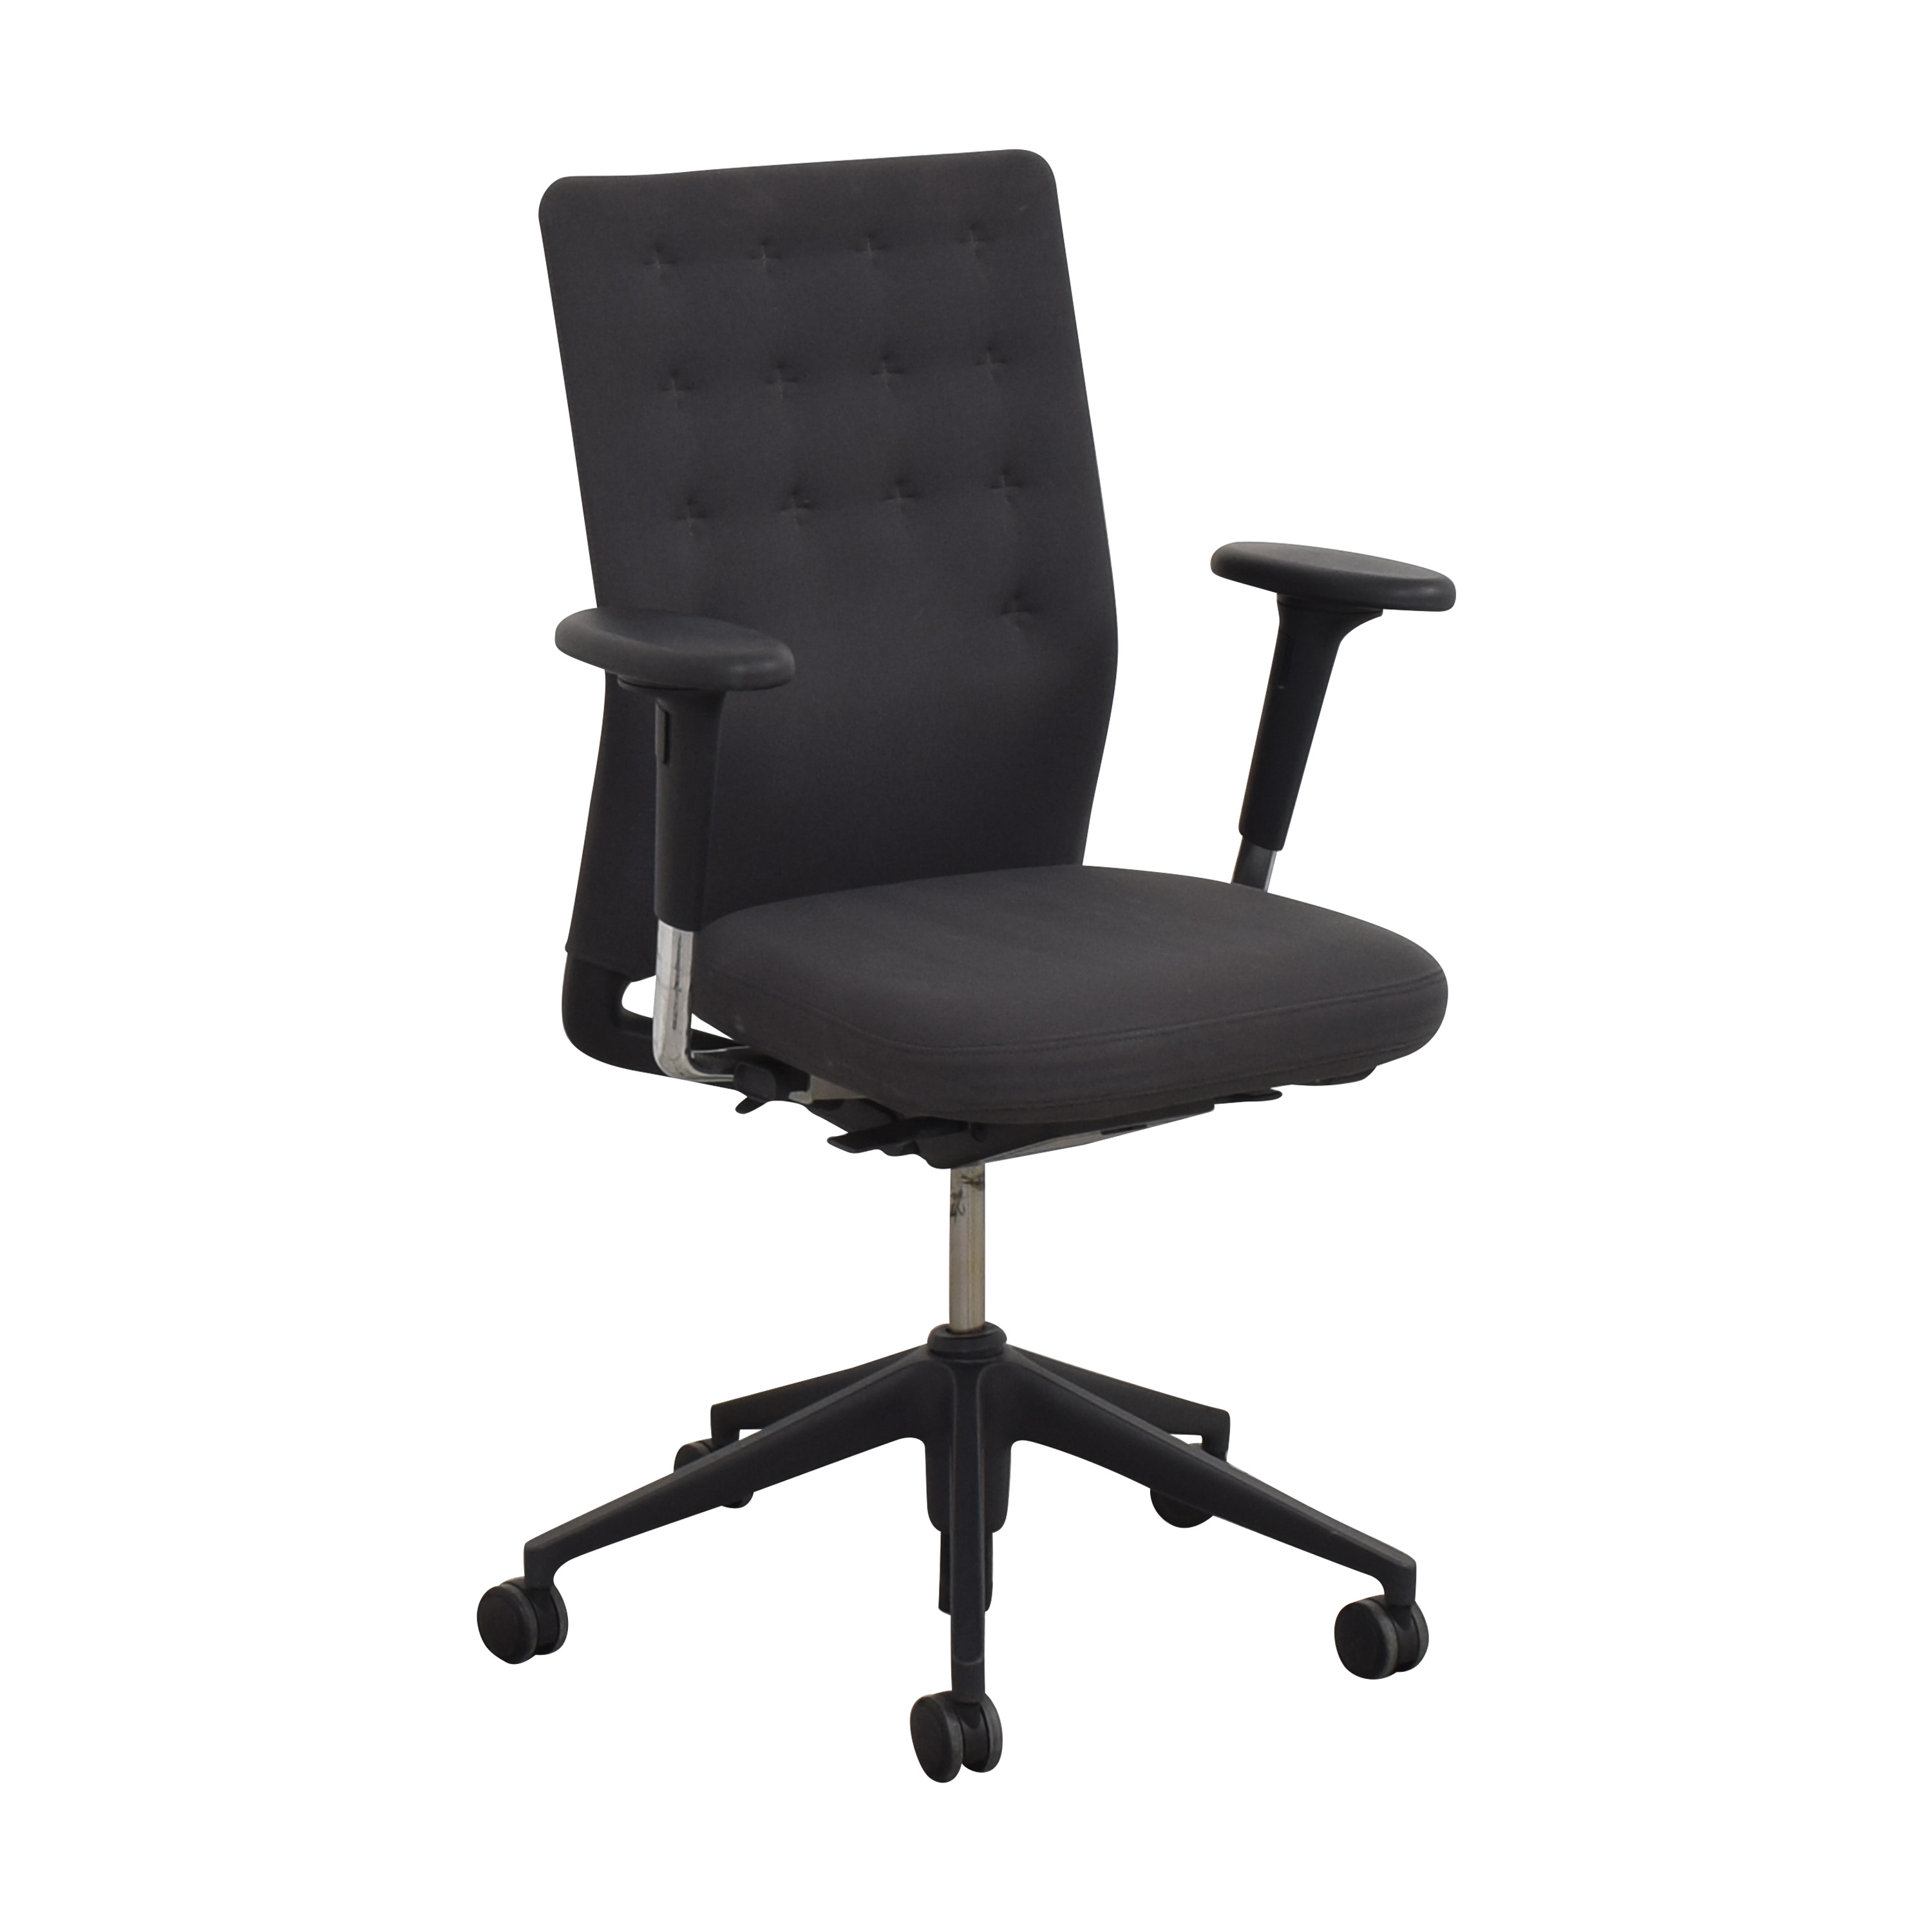 buy Vitra ID Trim Office Chair Vitra Chairs